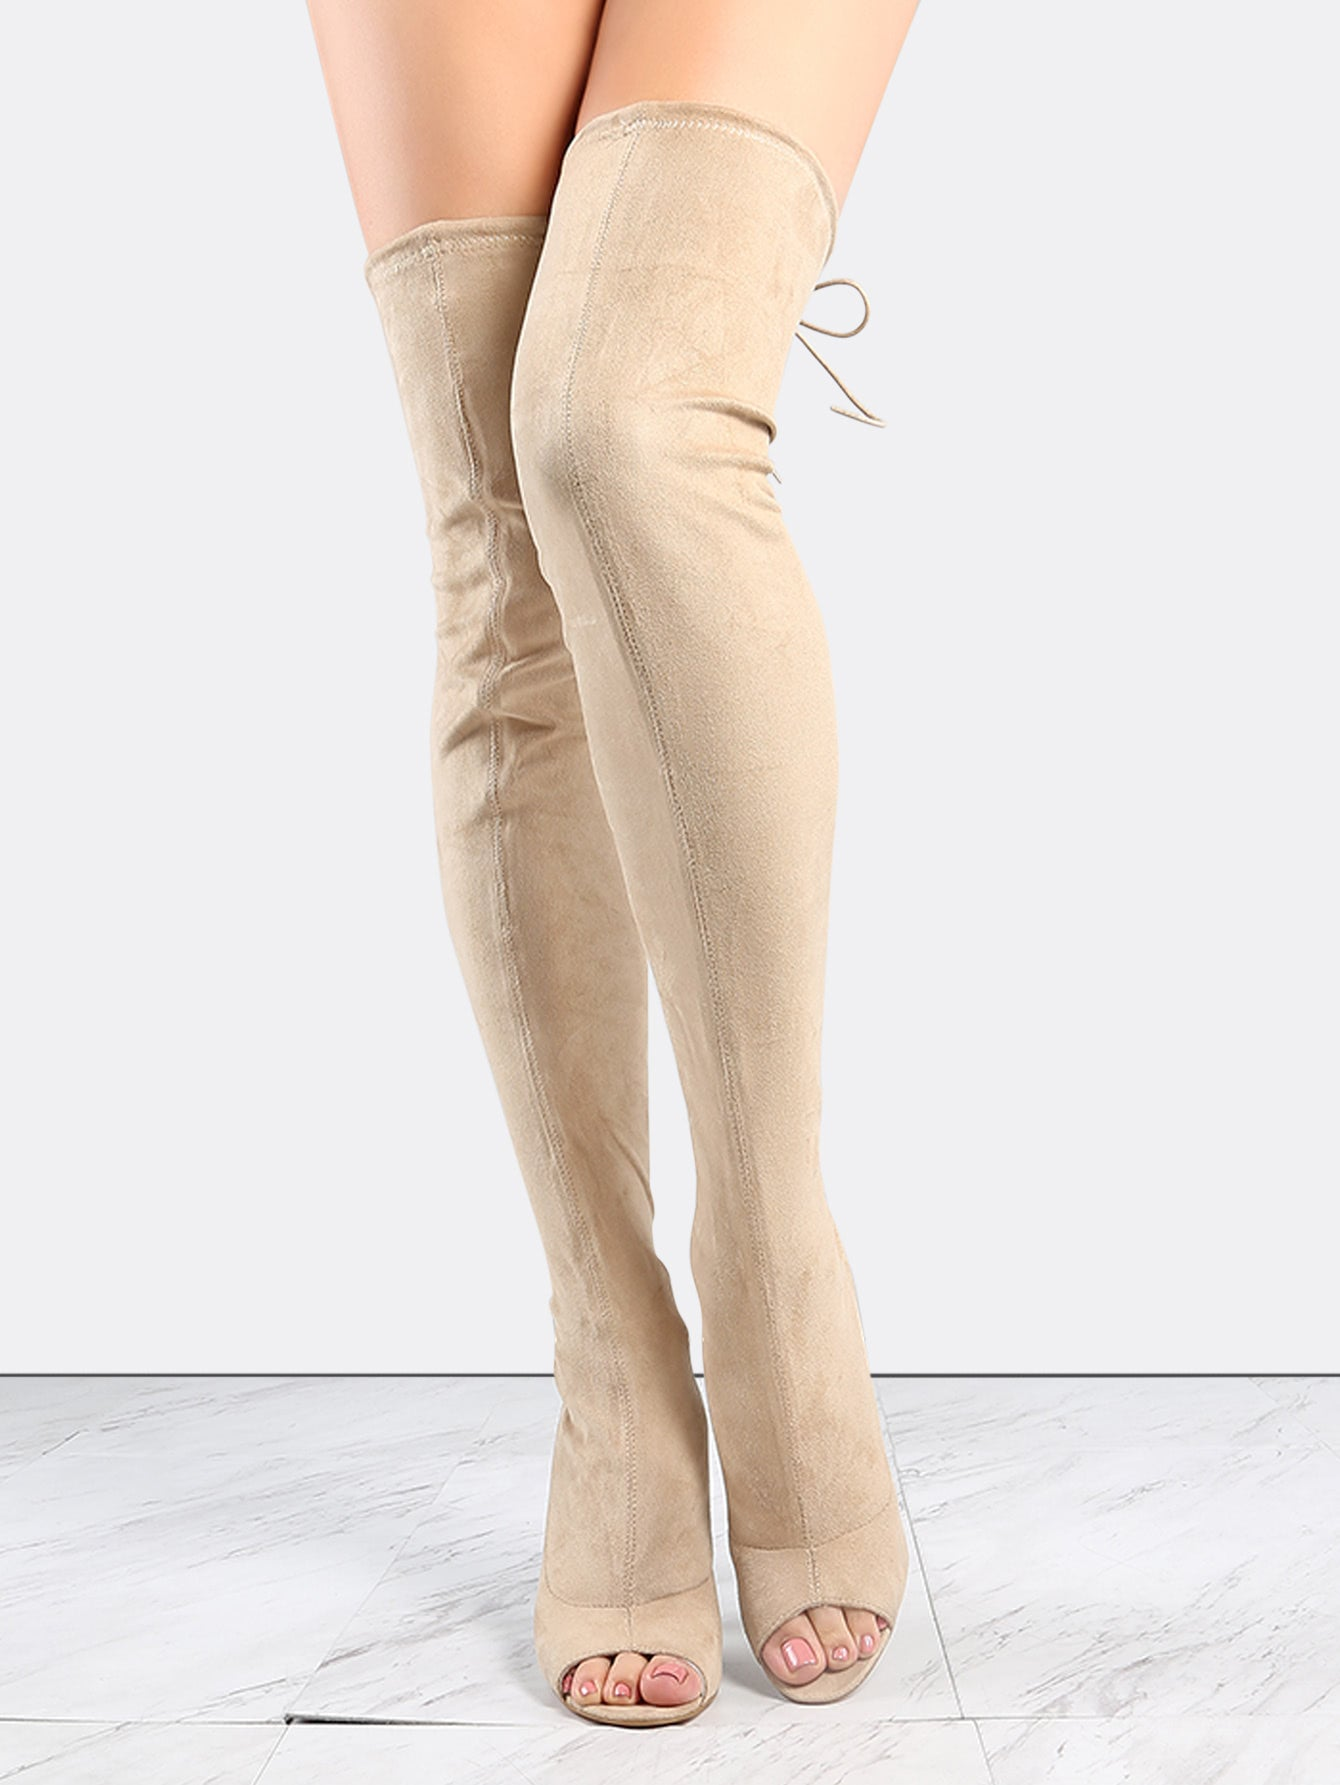 Suede Peep Toe Thigh High Heel Boots